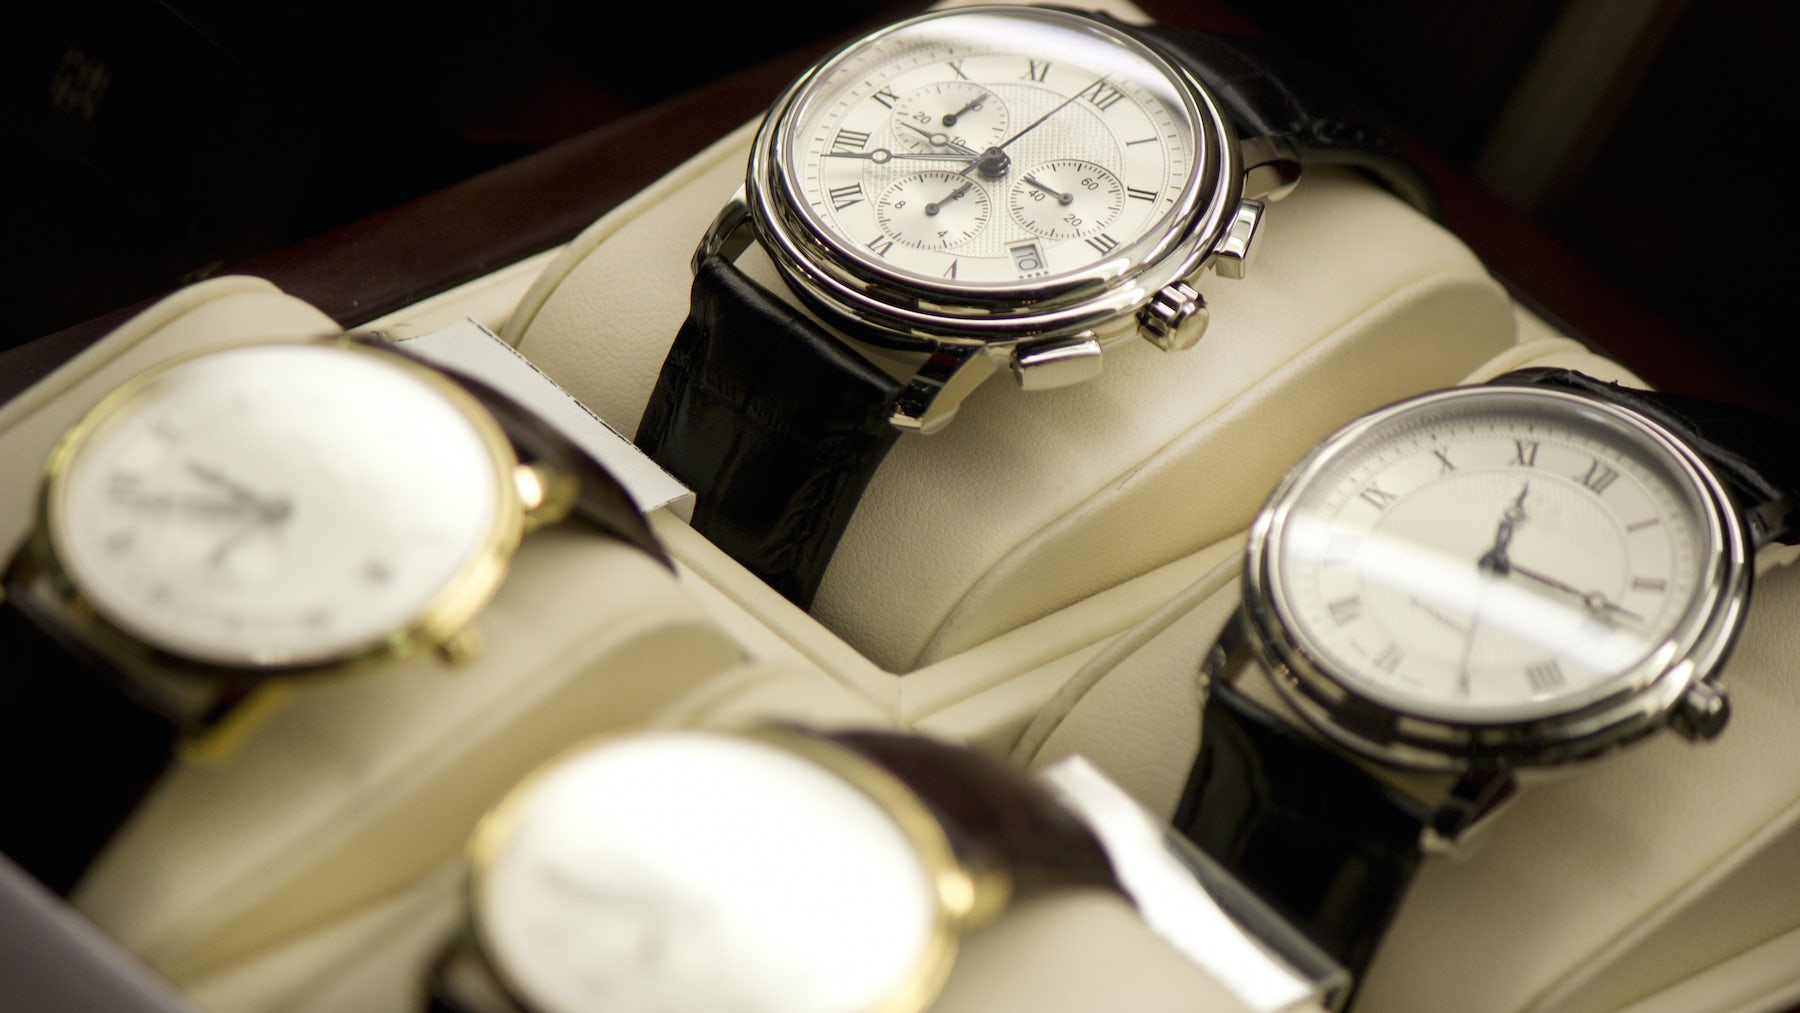 Article cover of Swiss Watch Exports Fall by 5.7 Percent in April